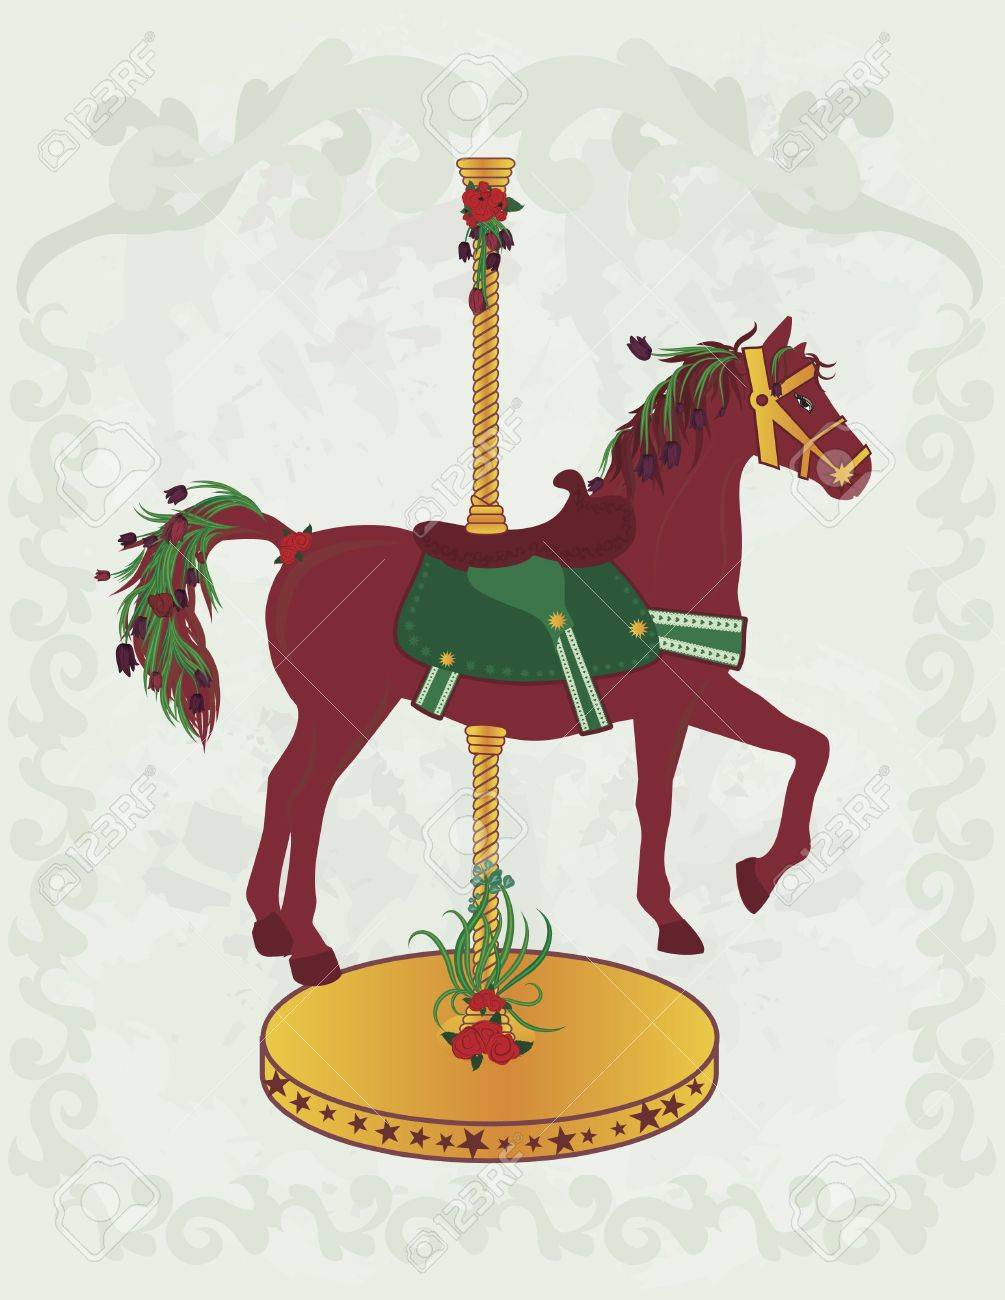 Illustration Of A Spring Inspired Carousel Horse The Drawing Stock Photo Picture And Royalty Free Image Image 2453794